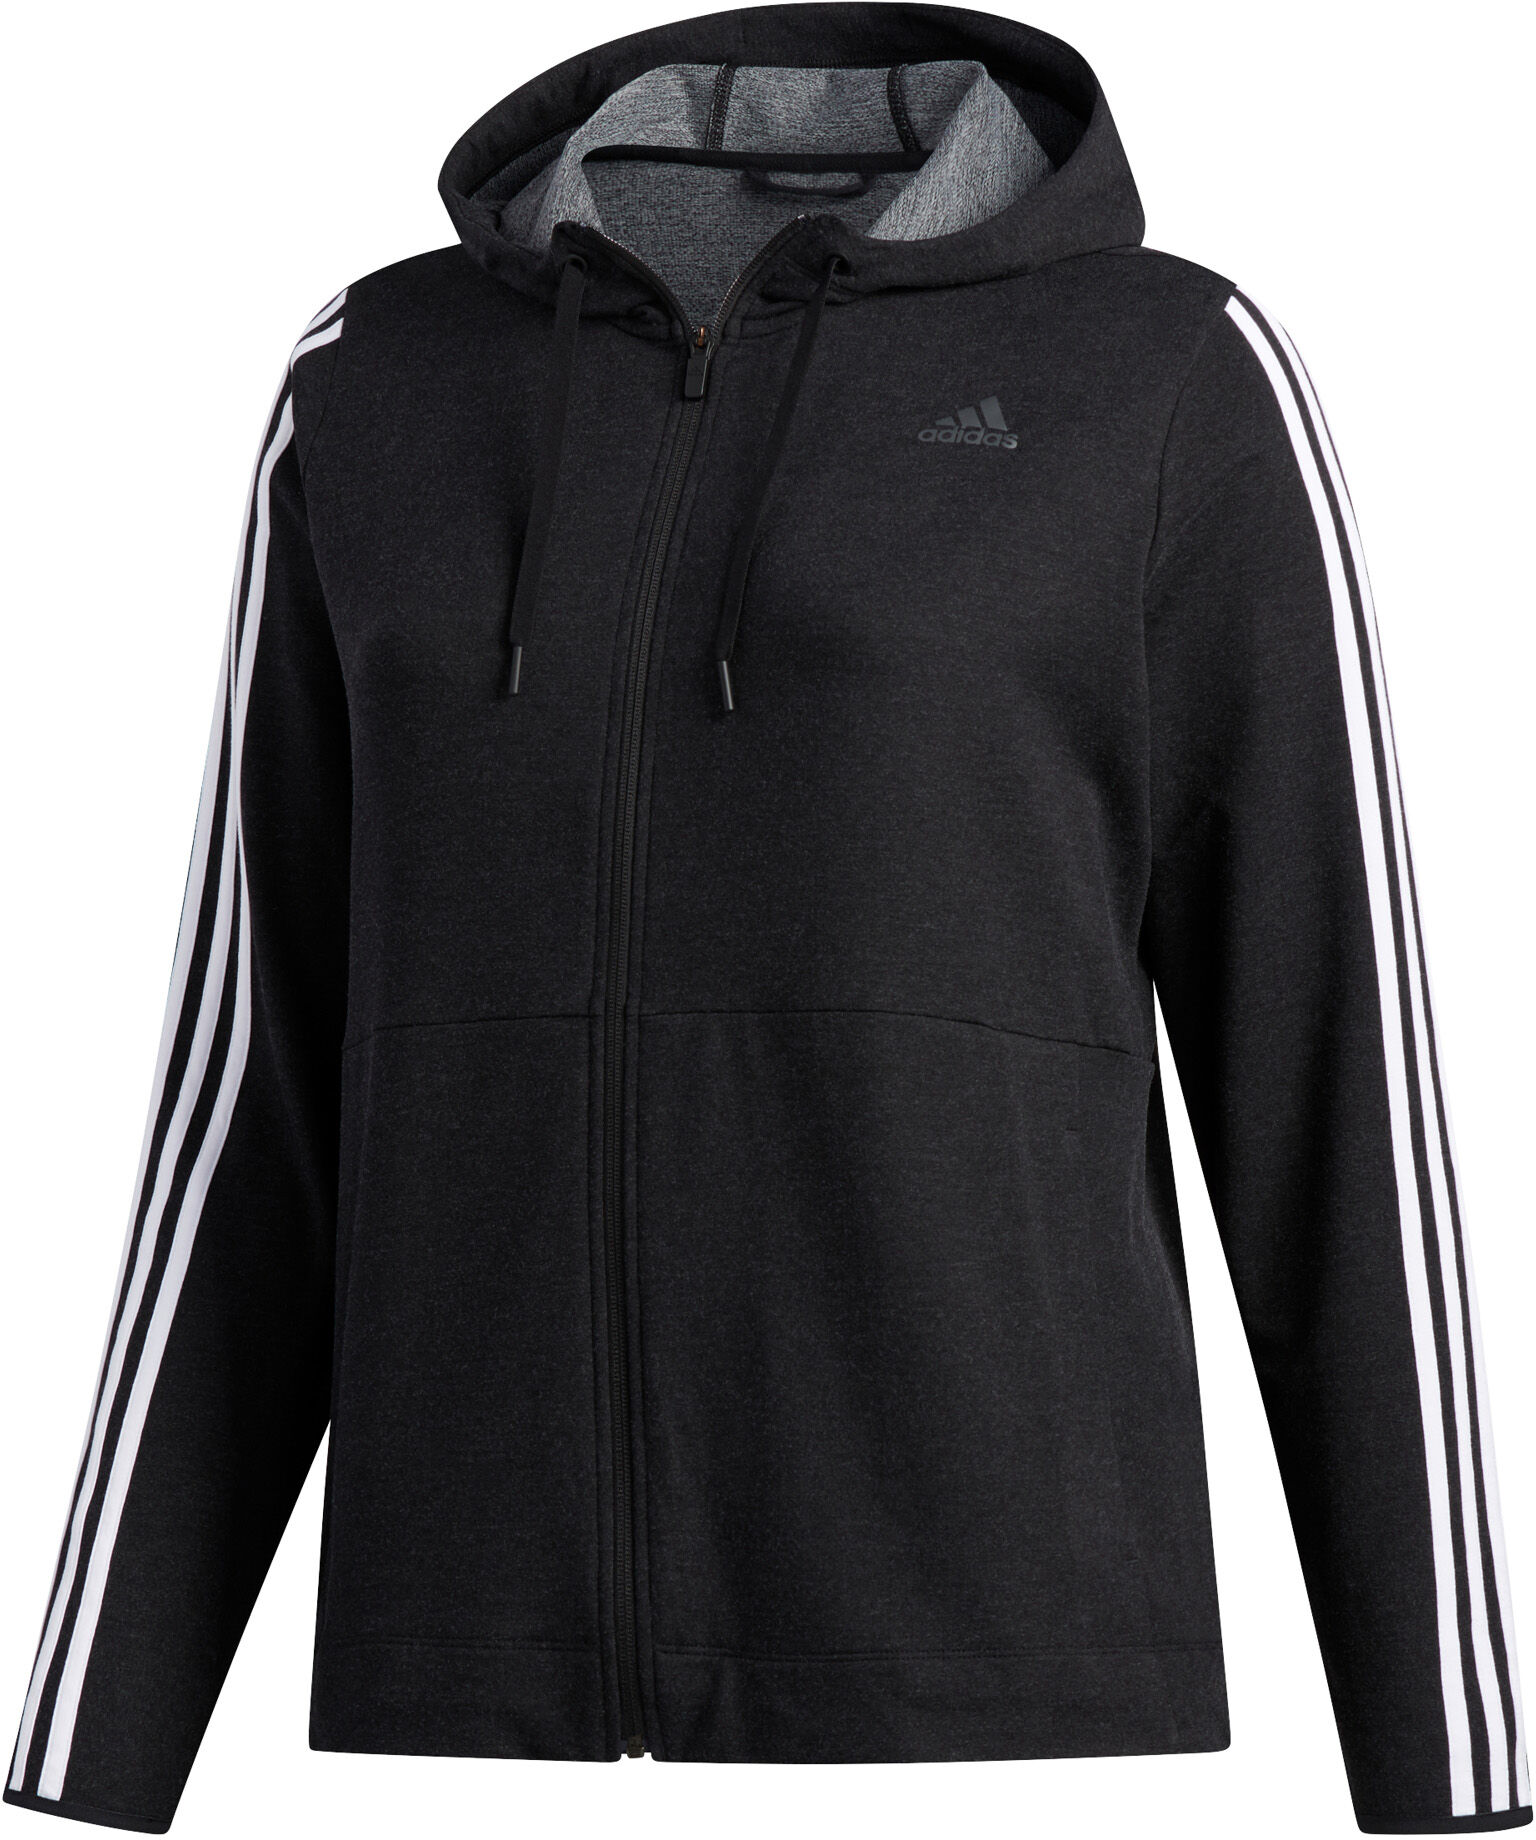 ADIDAS Jacken | INTERSPORT